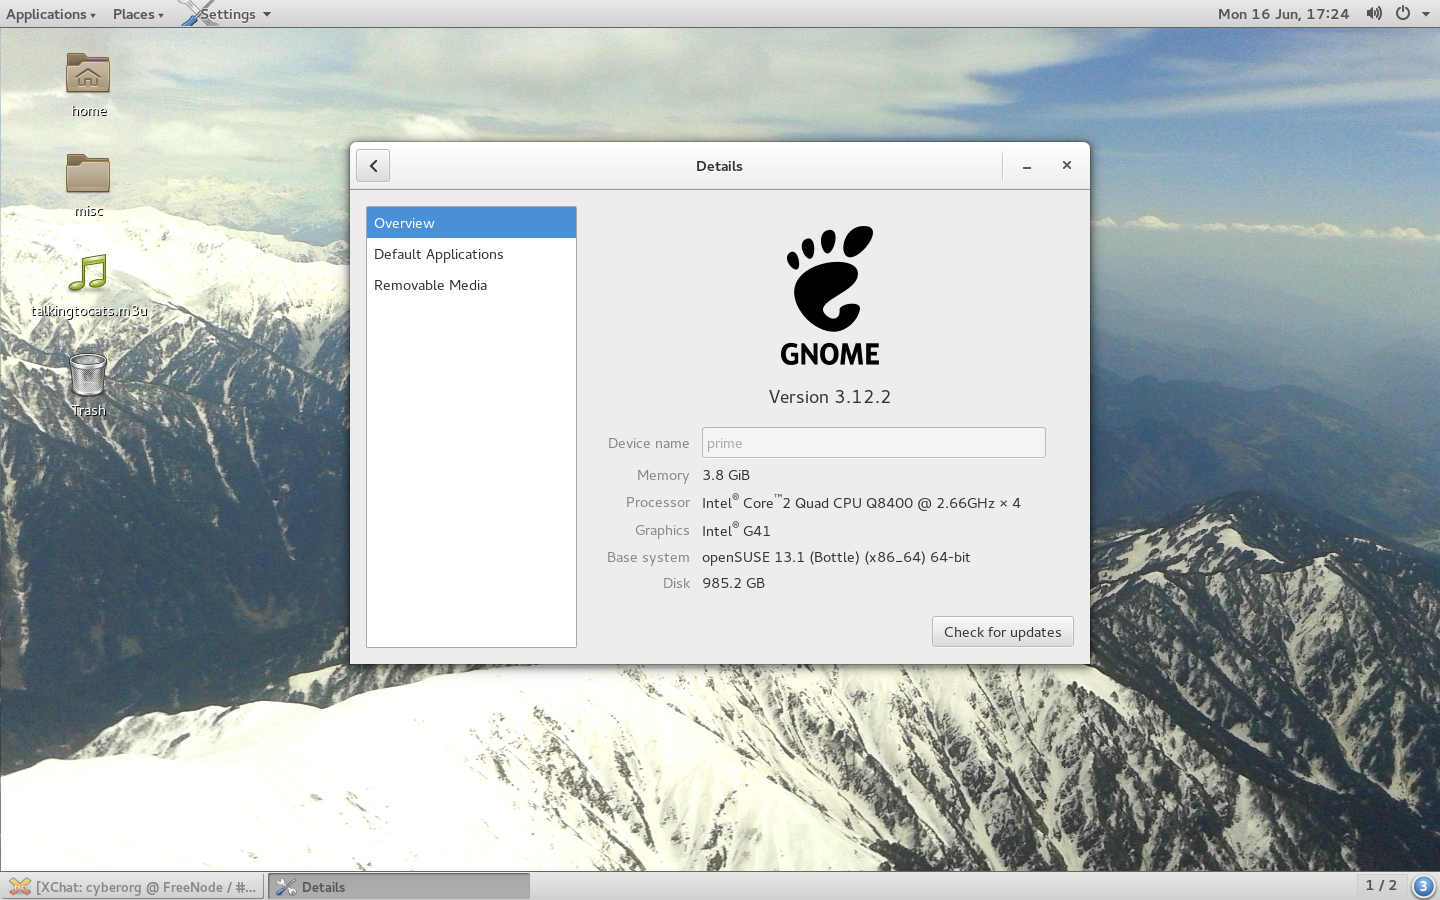 GNOME 3.12 classic running on openSUSE 13.1